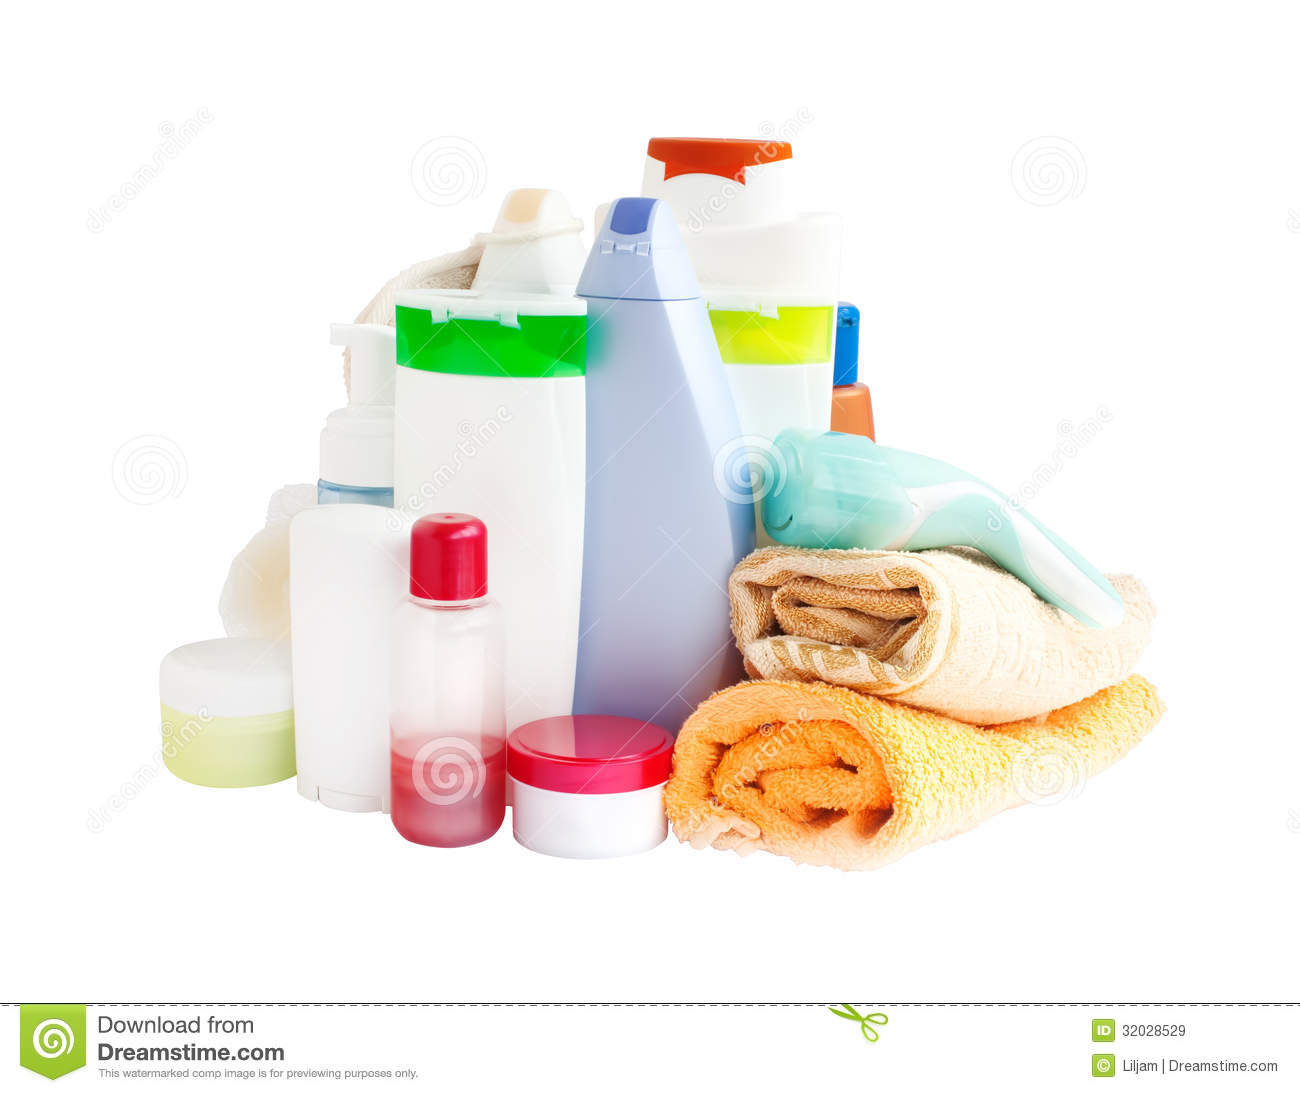 Care And Bathroom Products Royalty Free Stock Images - Image: 32028529